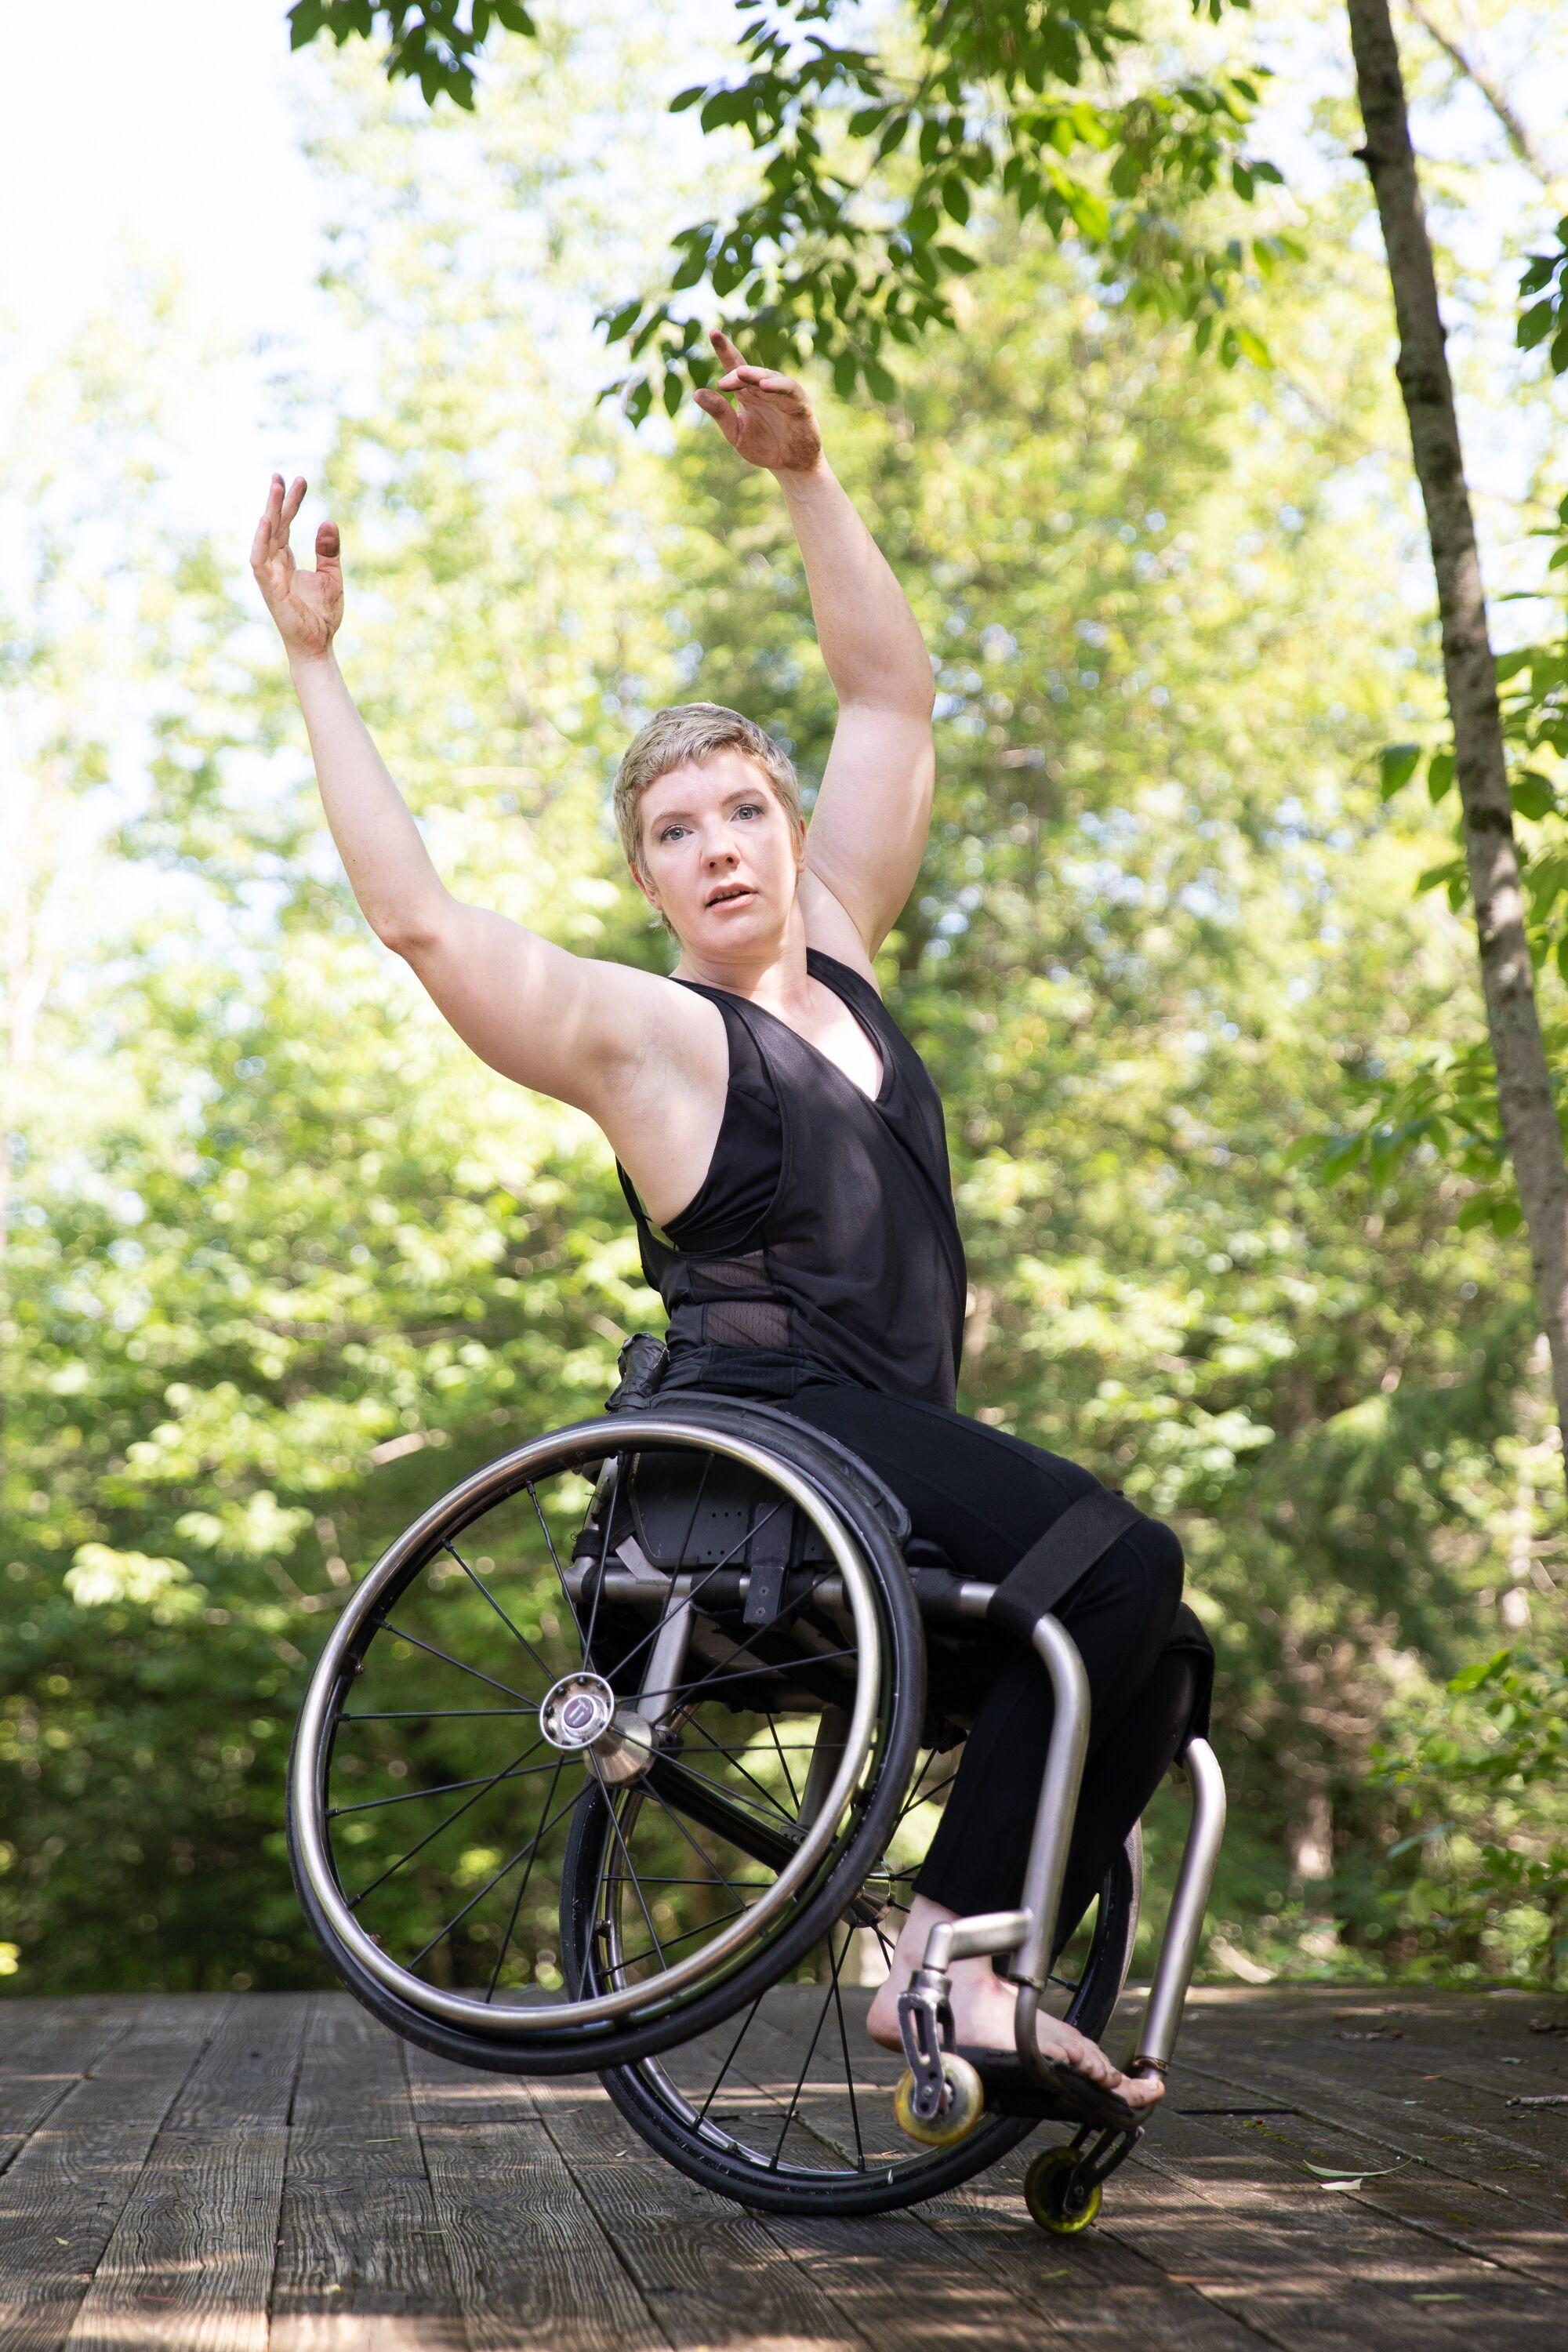 Lawson balances on one wheel, tilting away from the camera. She throws her arms overhead and looks at the viewer. Lush greenery is in the background. Lawson found that dance combined her lifelong loves of art and athleticism.